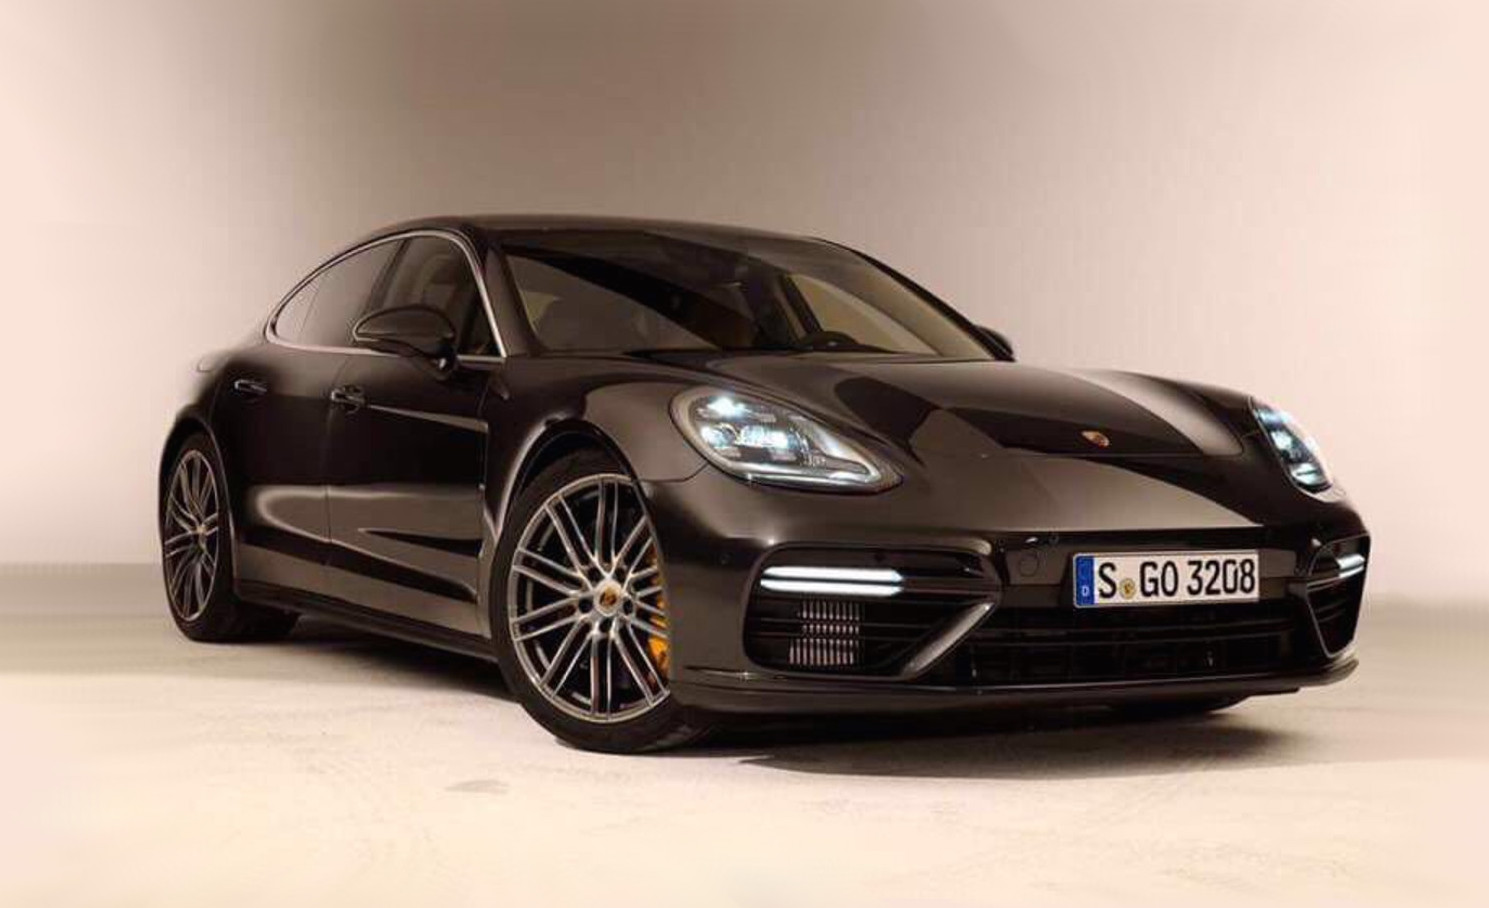 2017 porsche panamera turbo revealed in leaked images performancedrive. Black Bedroom Furniture Sets. Home Design Ideas